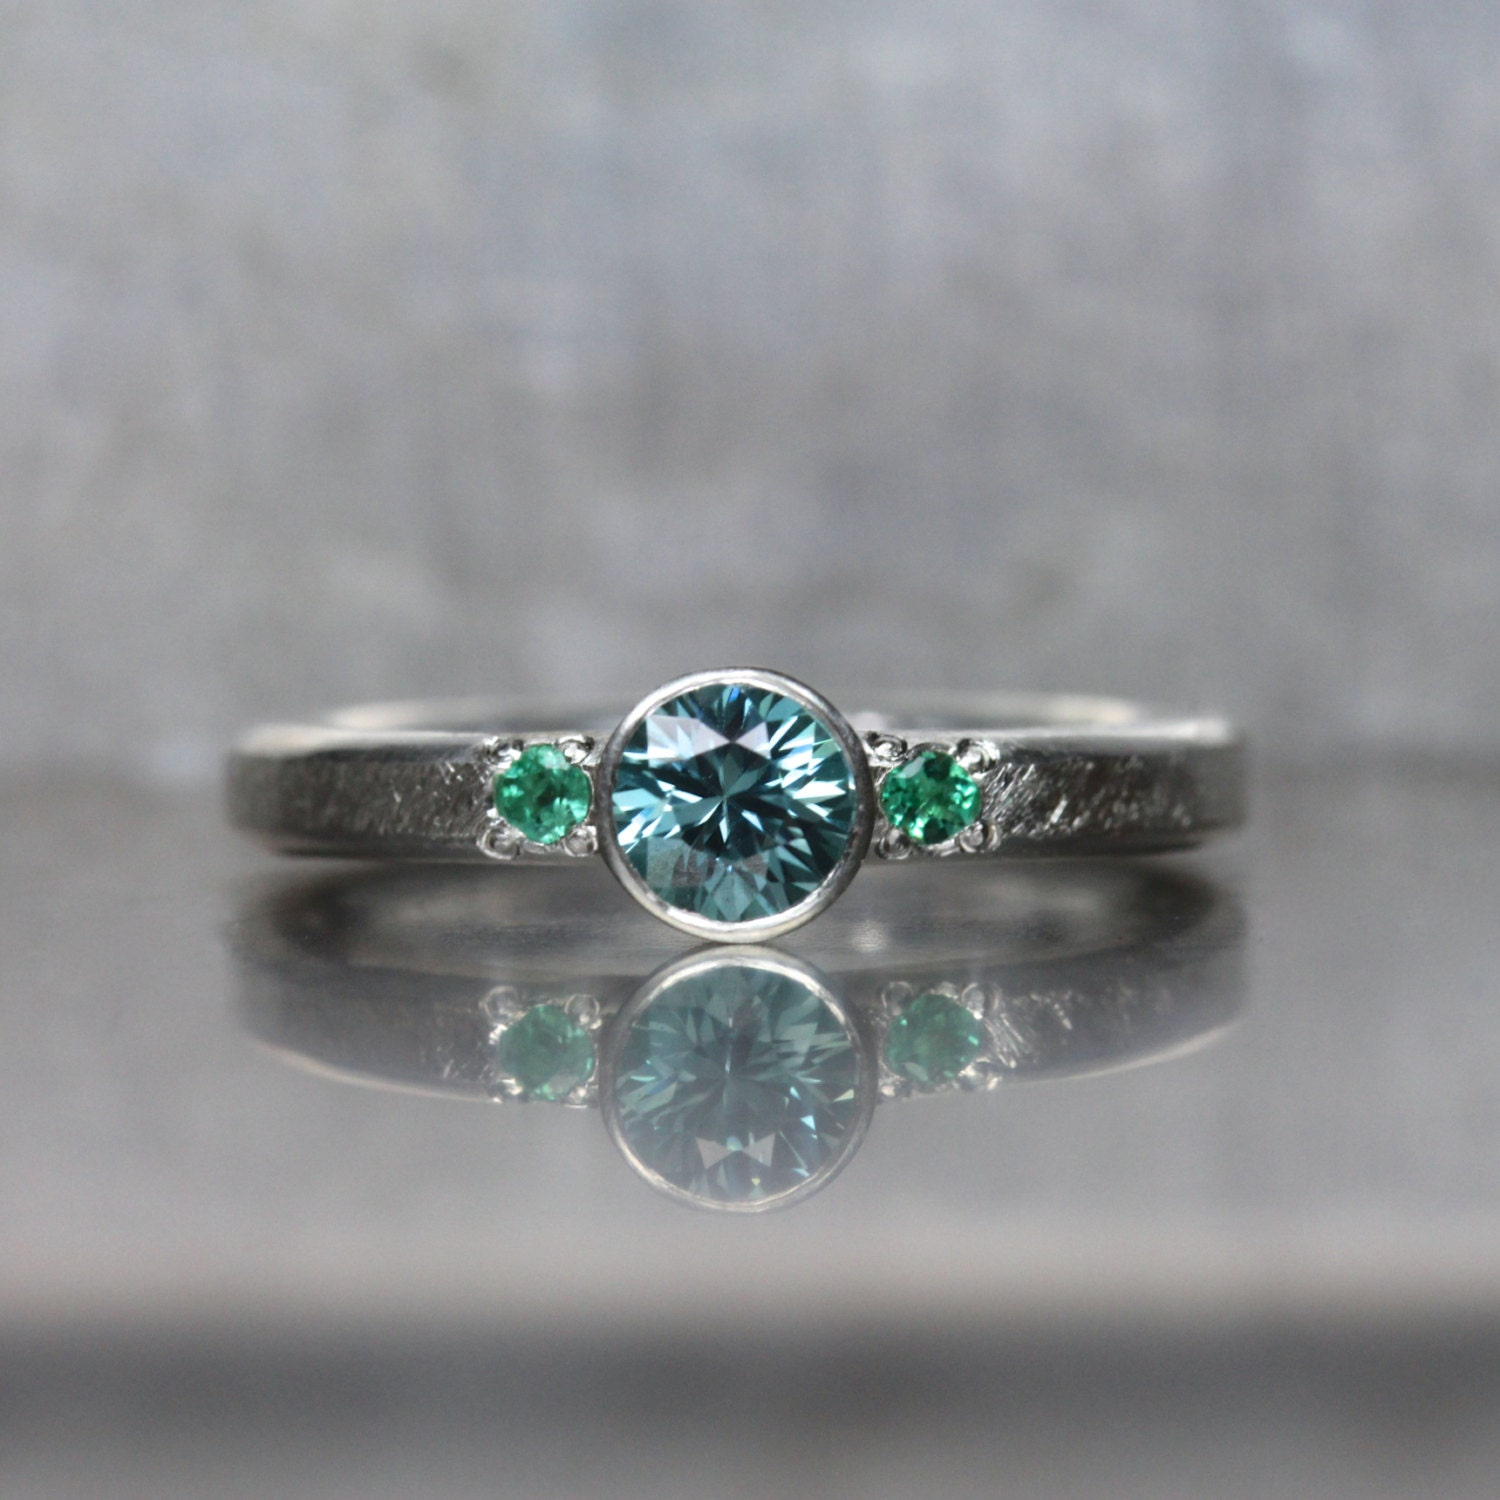 blue zircon emerald engagement ring silver mermaid ocean. Black Bedroom Furniture Sets. Home Design Ideas